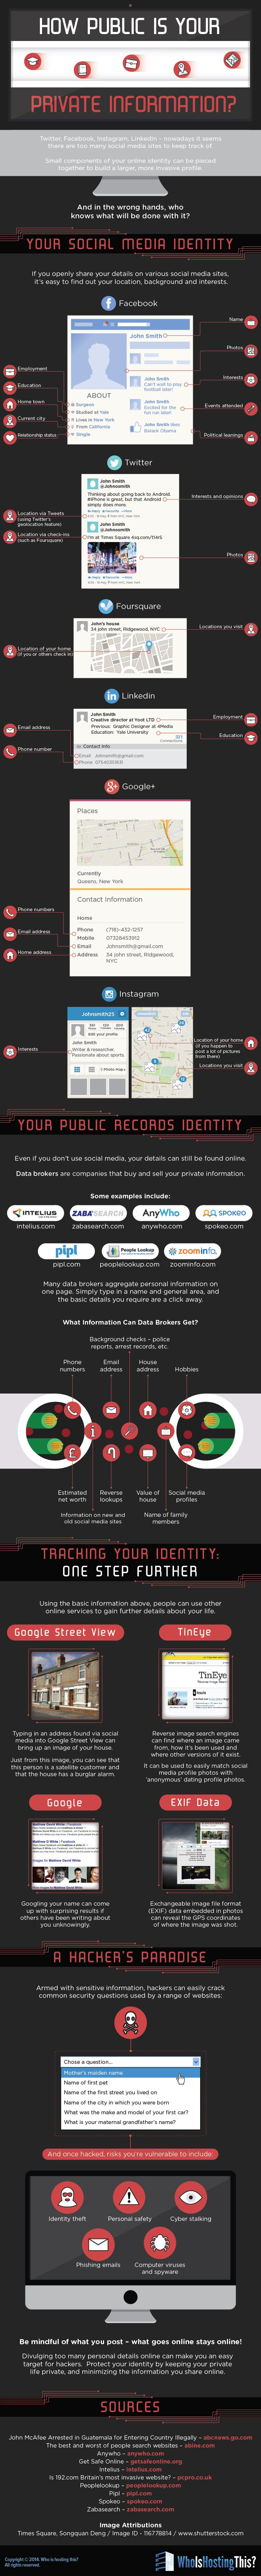 Infographic: How public is your private information?